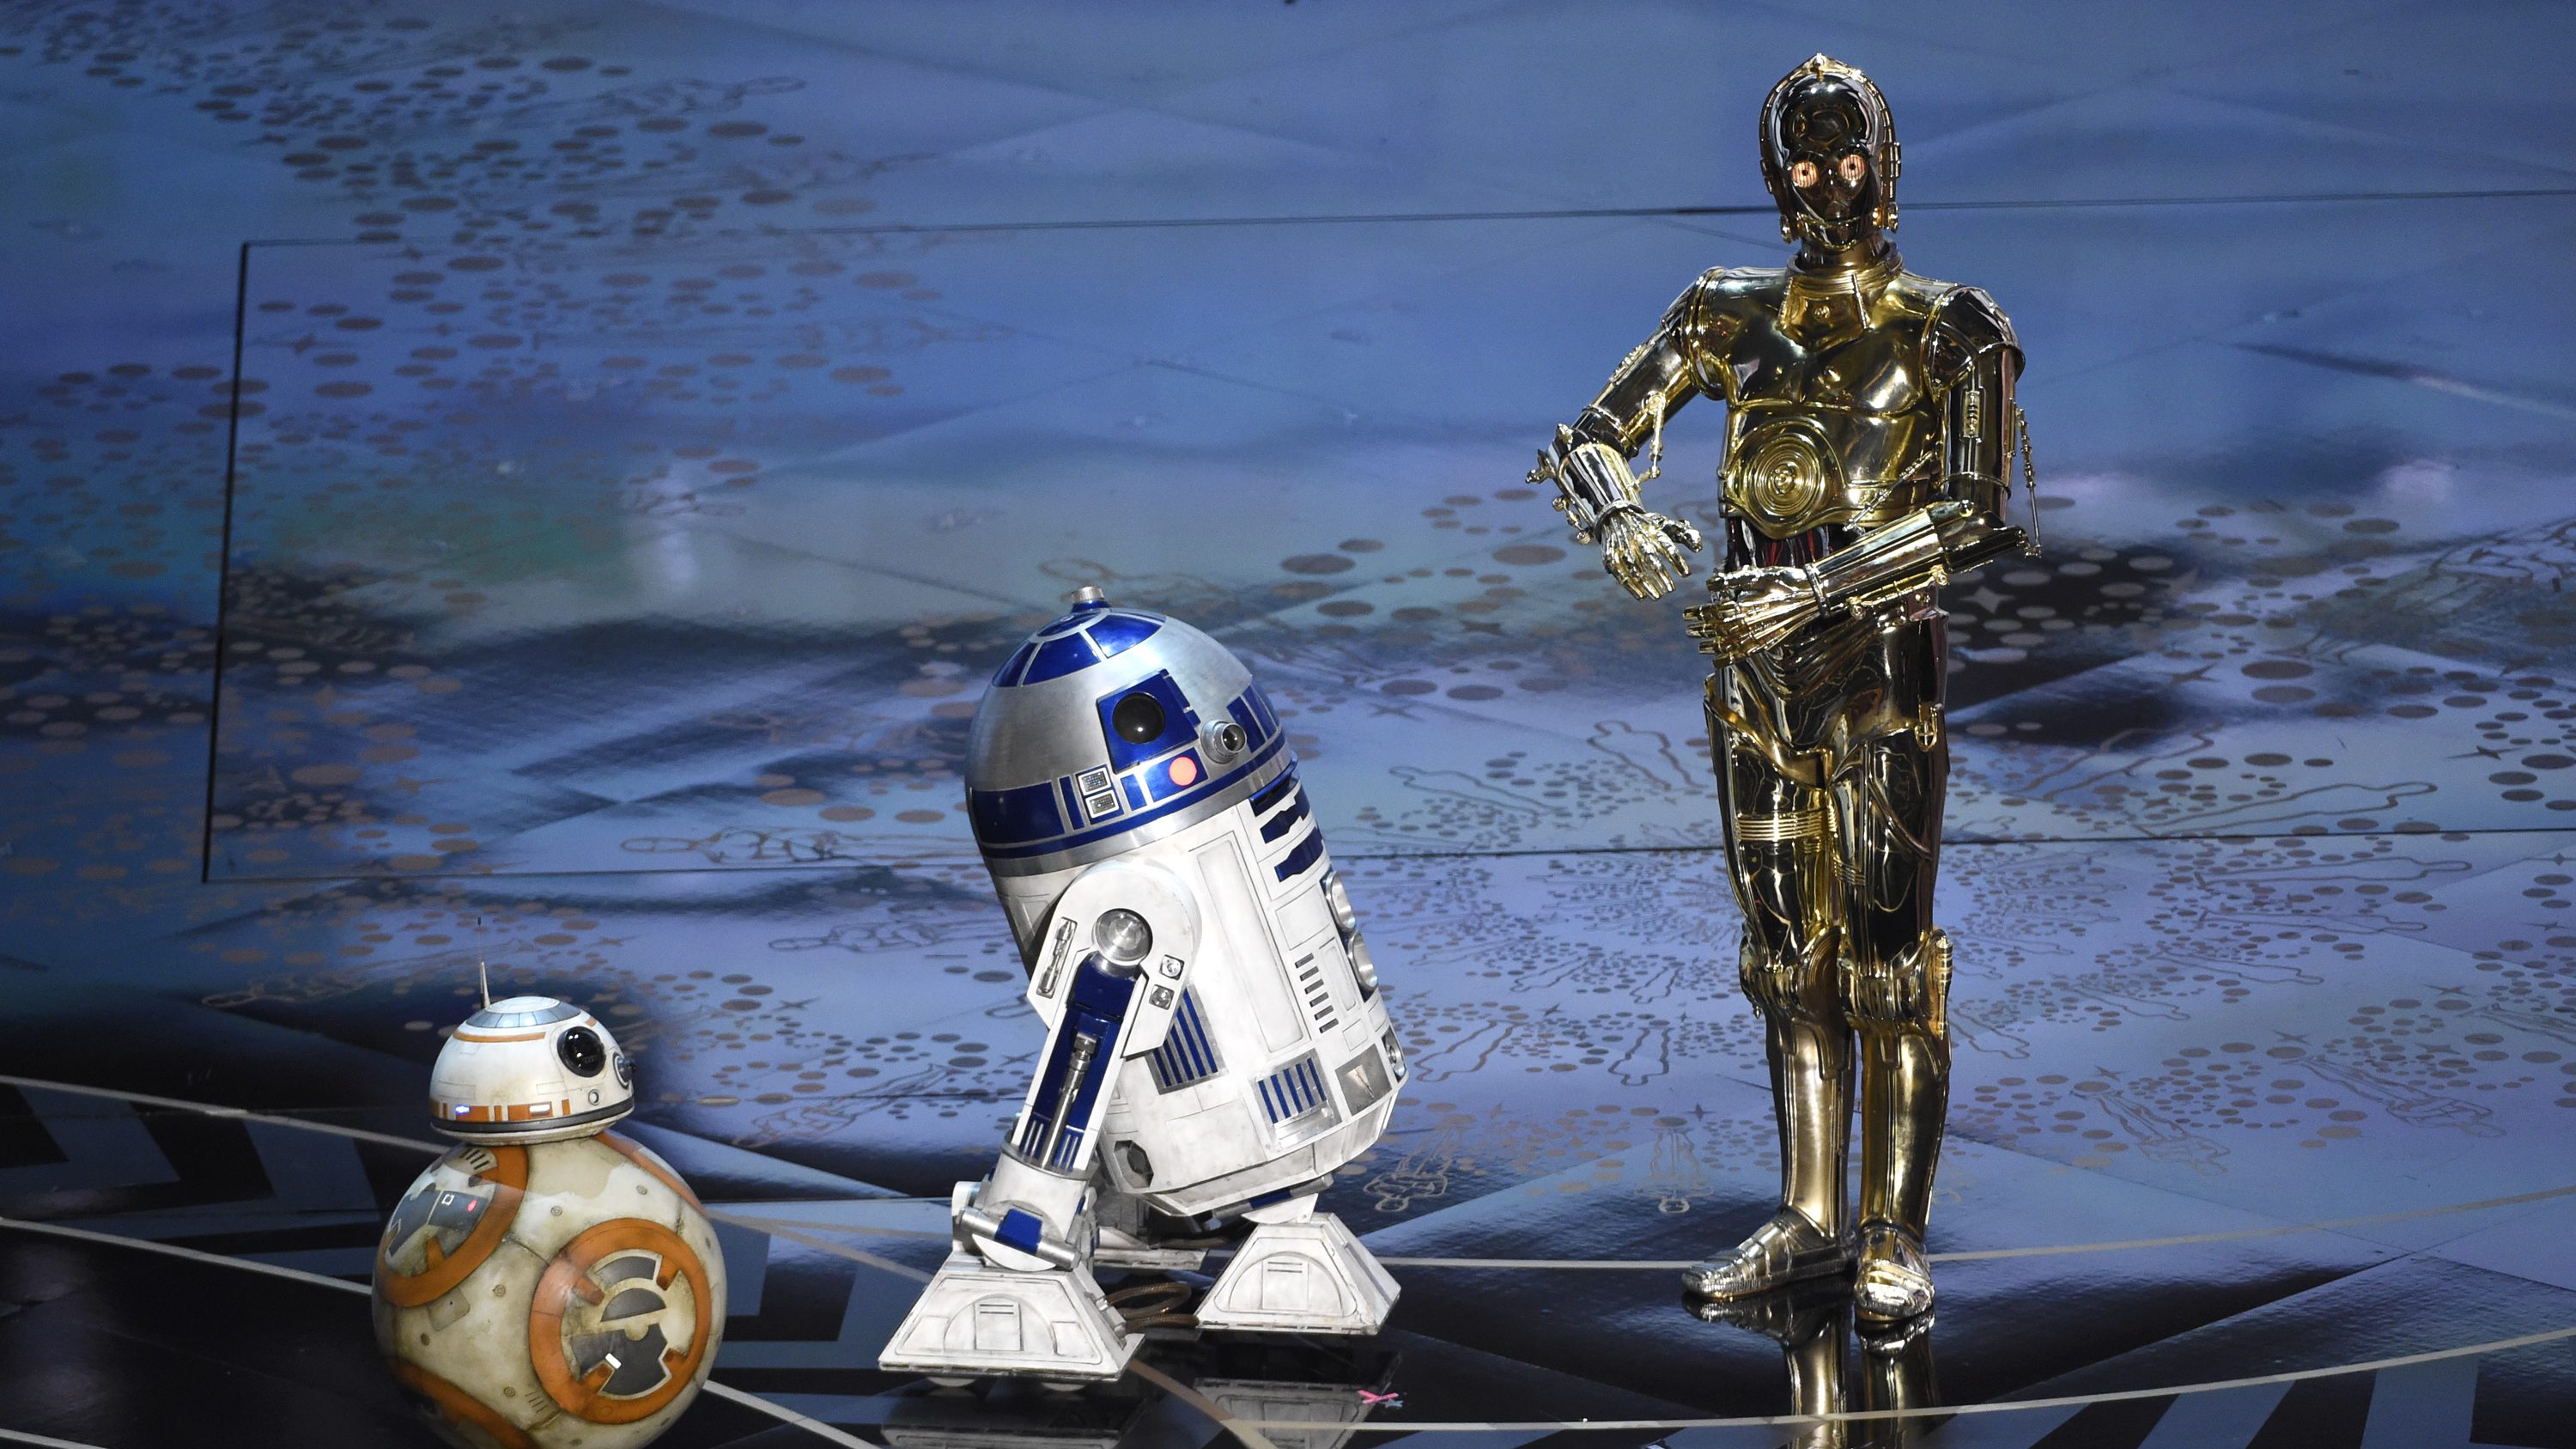 BB-8, from left, R2-D2, and C-3PO speak at the Oscars on Sunday, Feb. 28, 2016, at the Dolby Theatre in Los Angeles. (Photo by Chris Pizzello/Invision/AP)